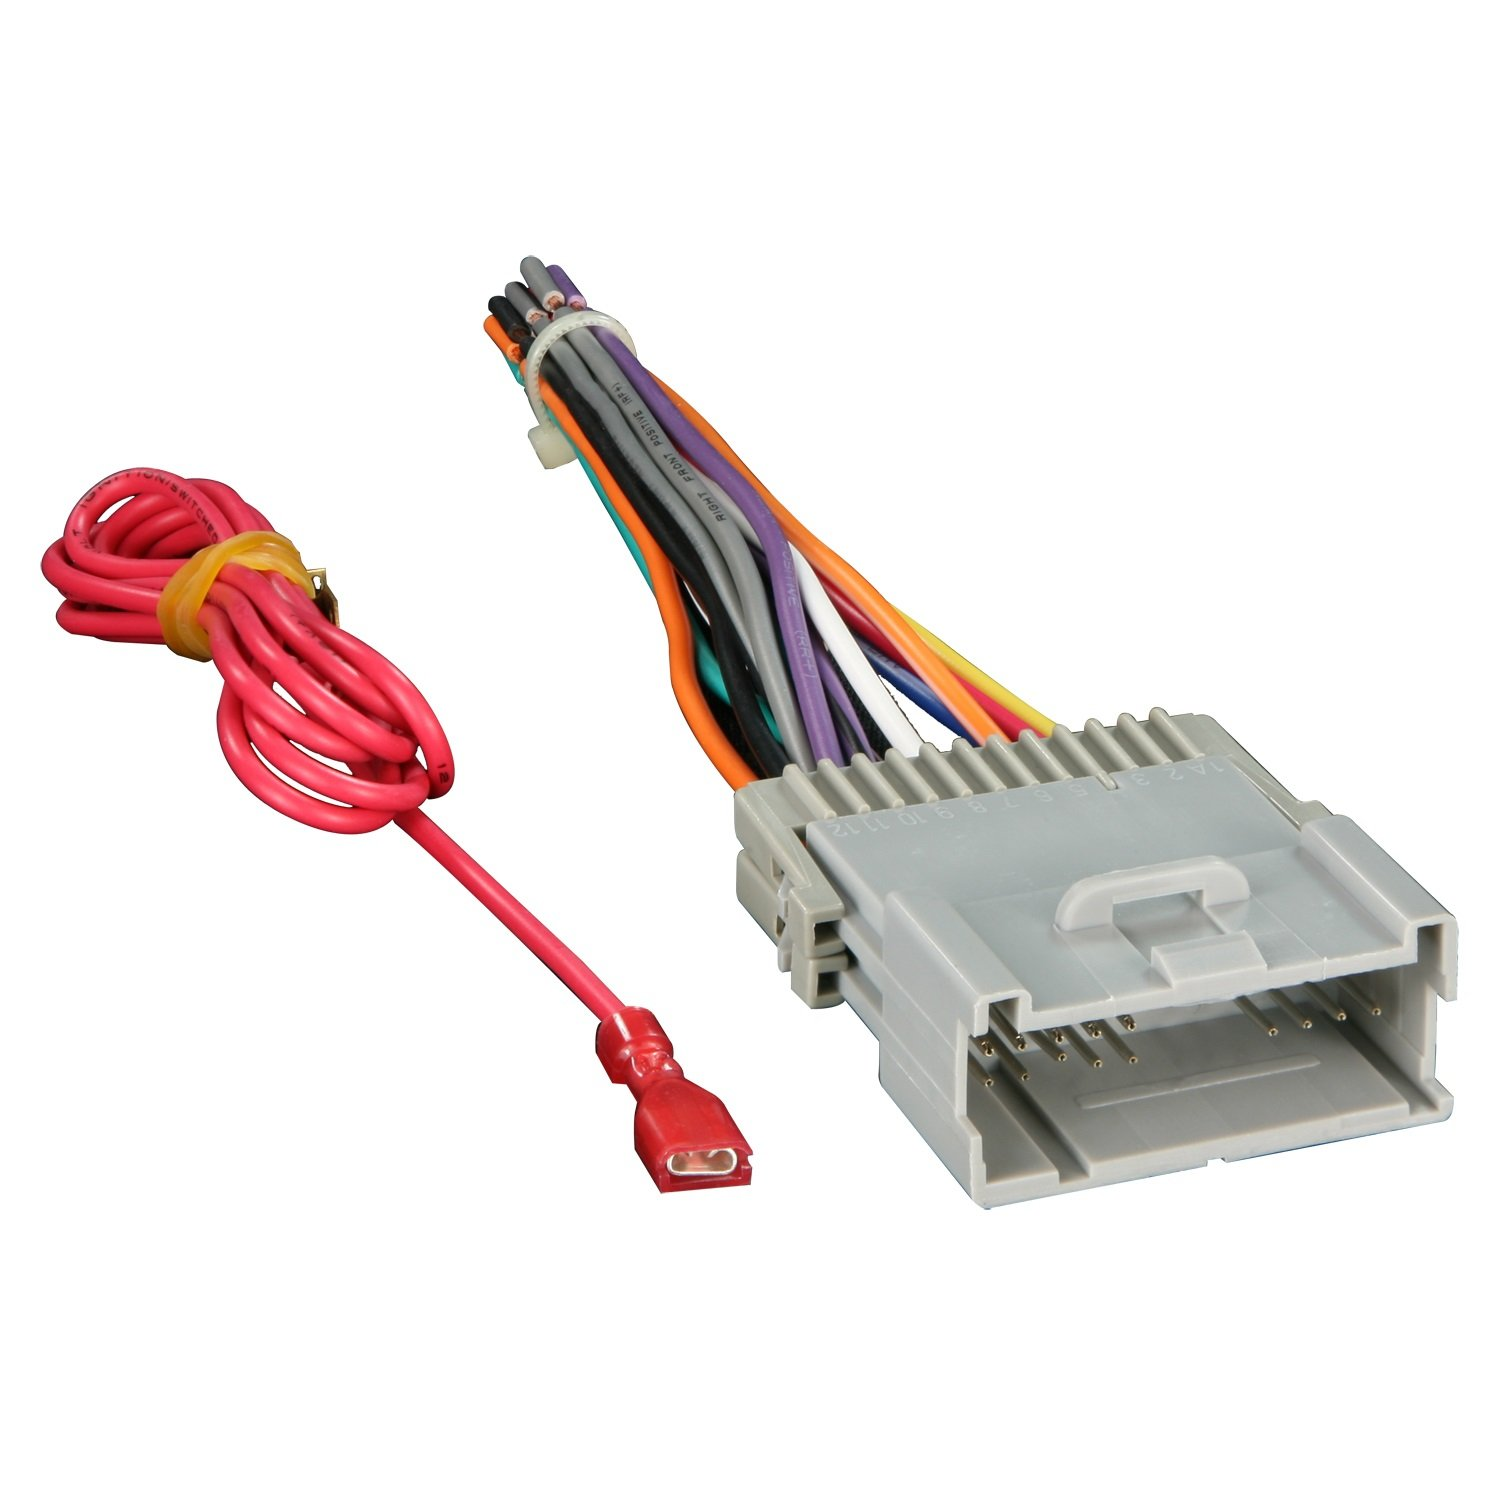 61eewxp9orL._SL1500_ amazon com metra 70 2003 radio wiring harness for gm 98 08 wiring harness adapter at gsmx.co